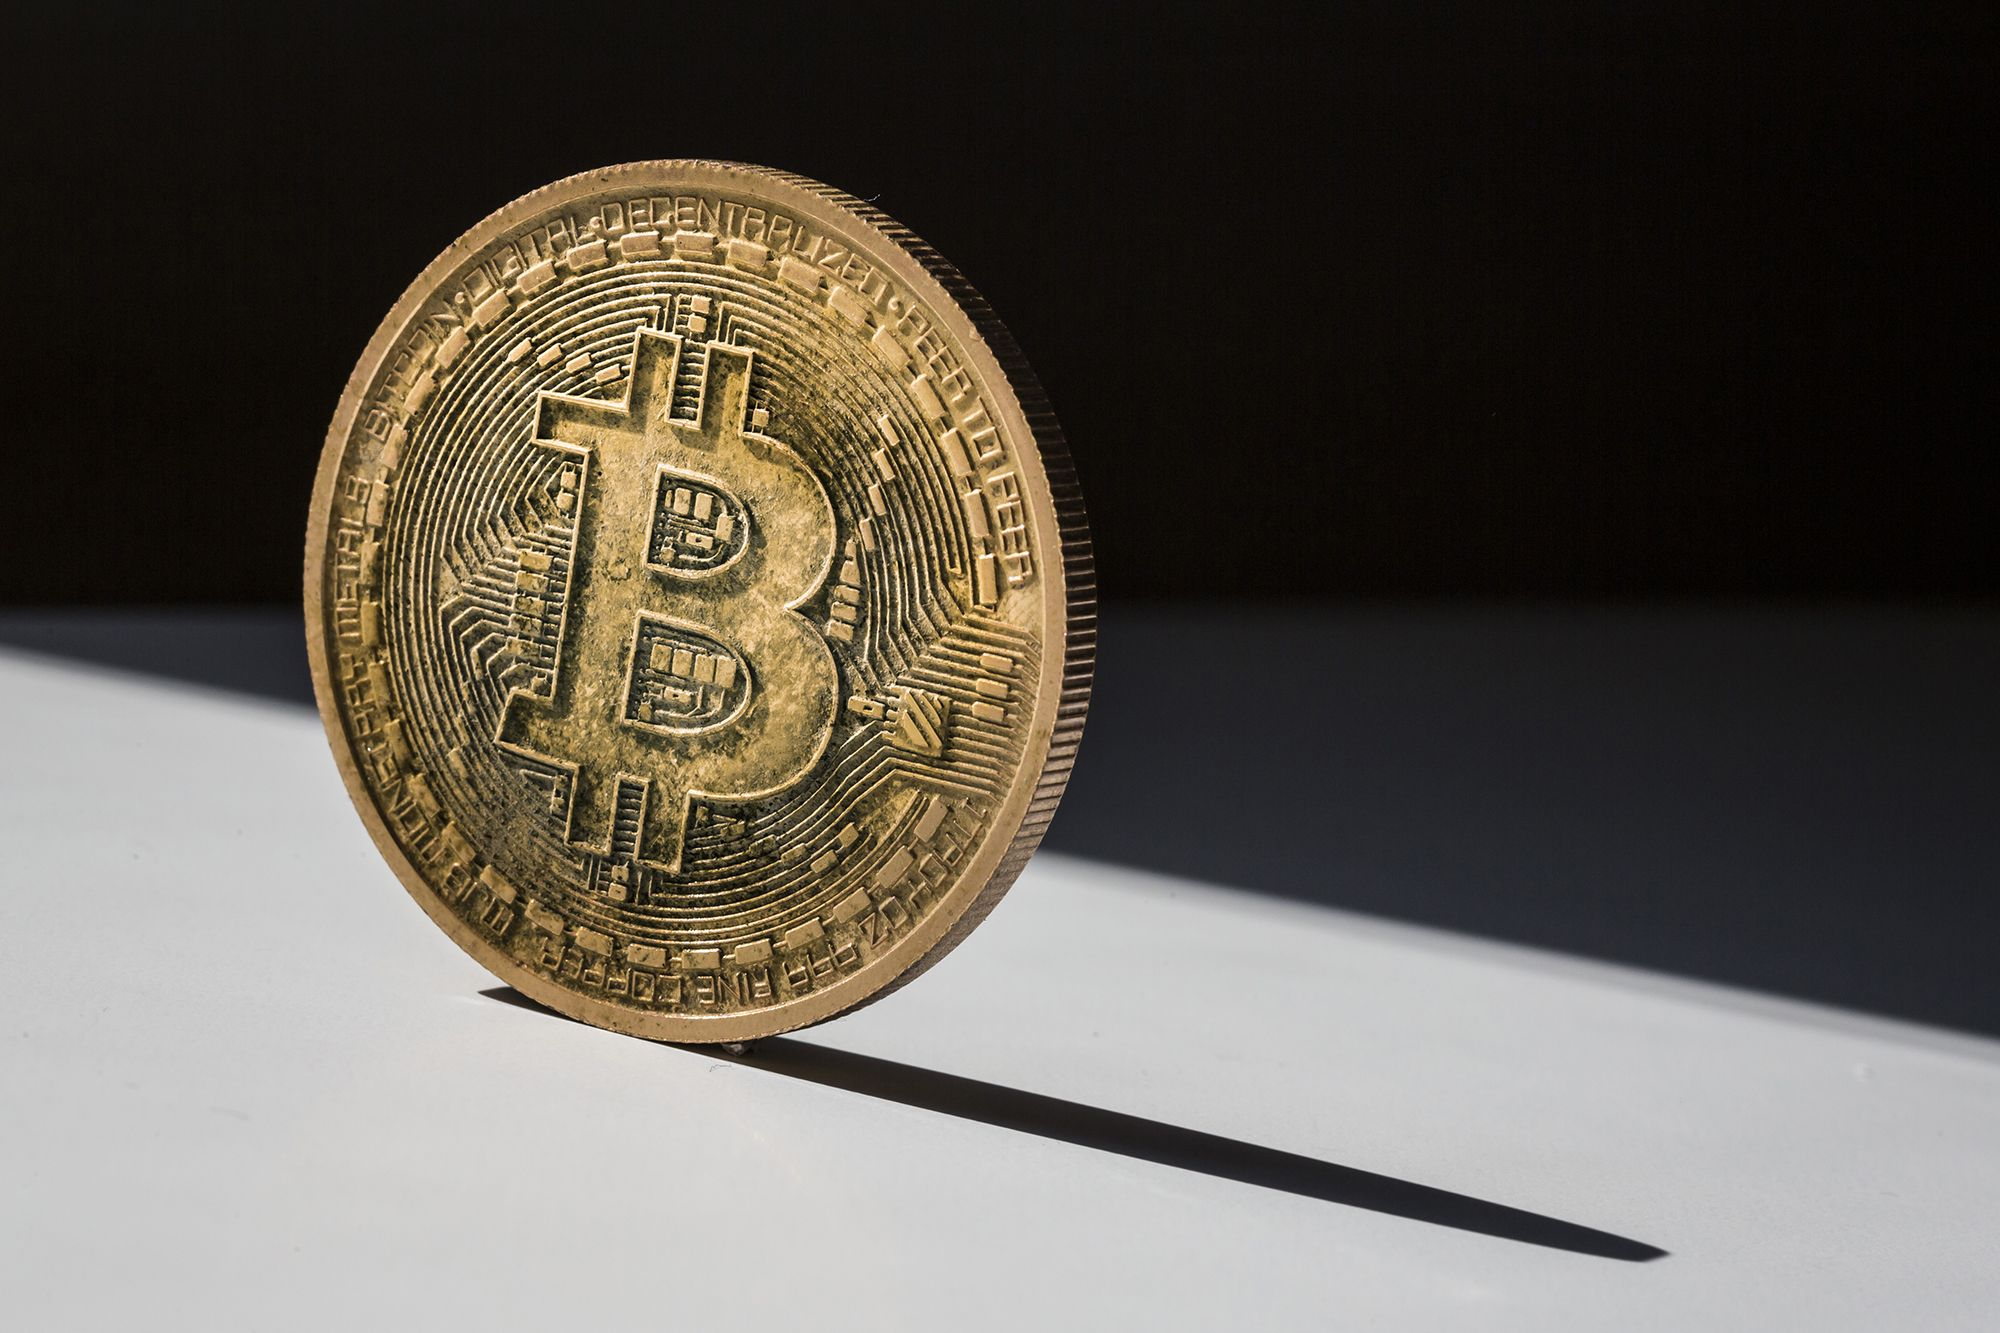 State virtual currency